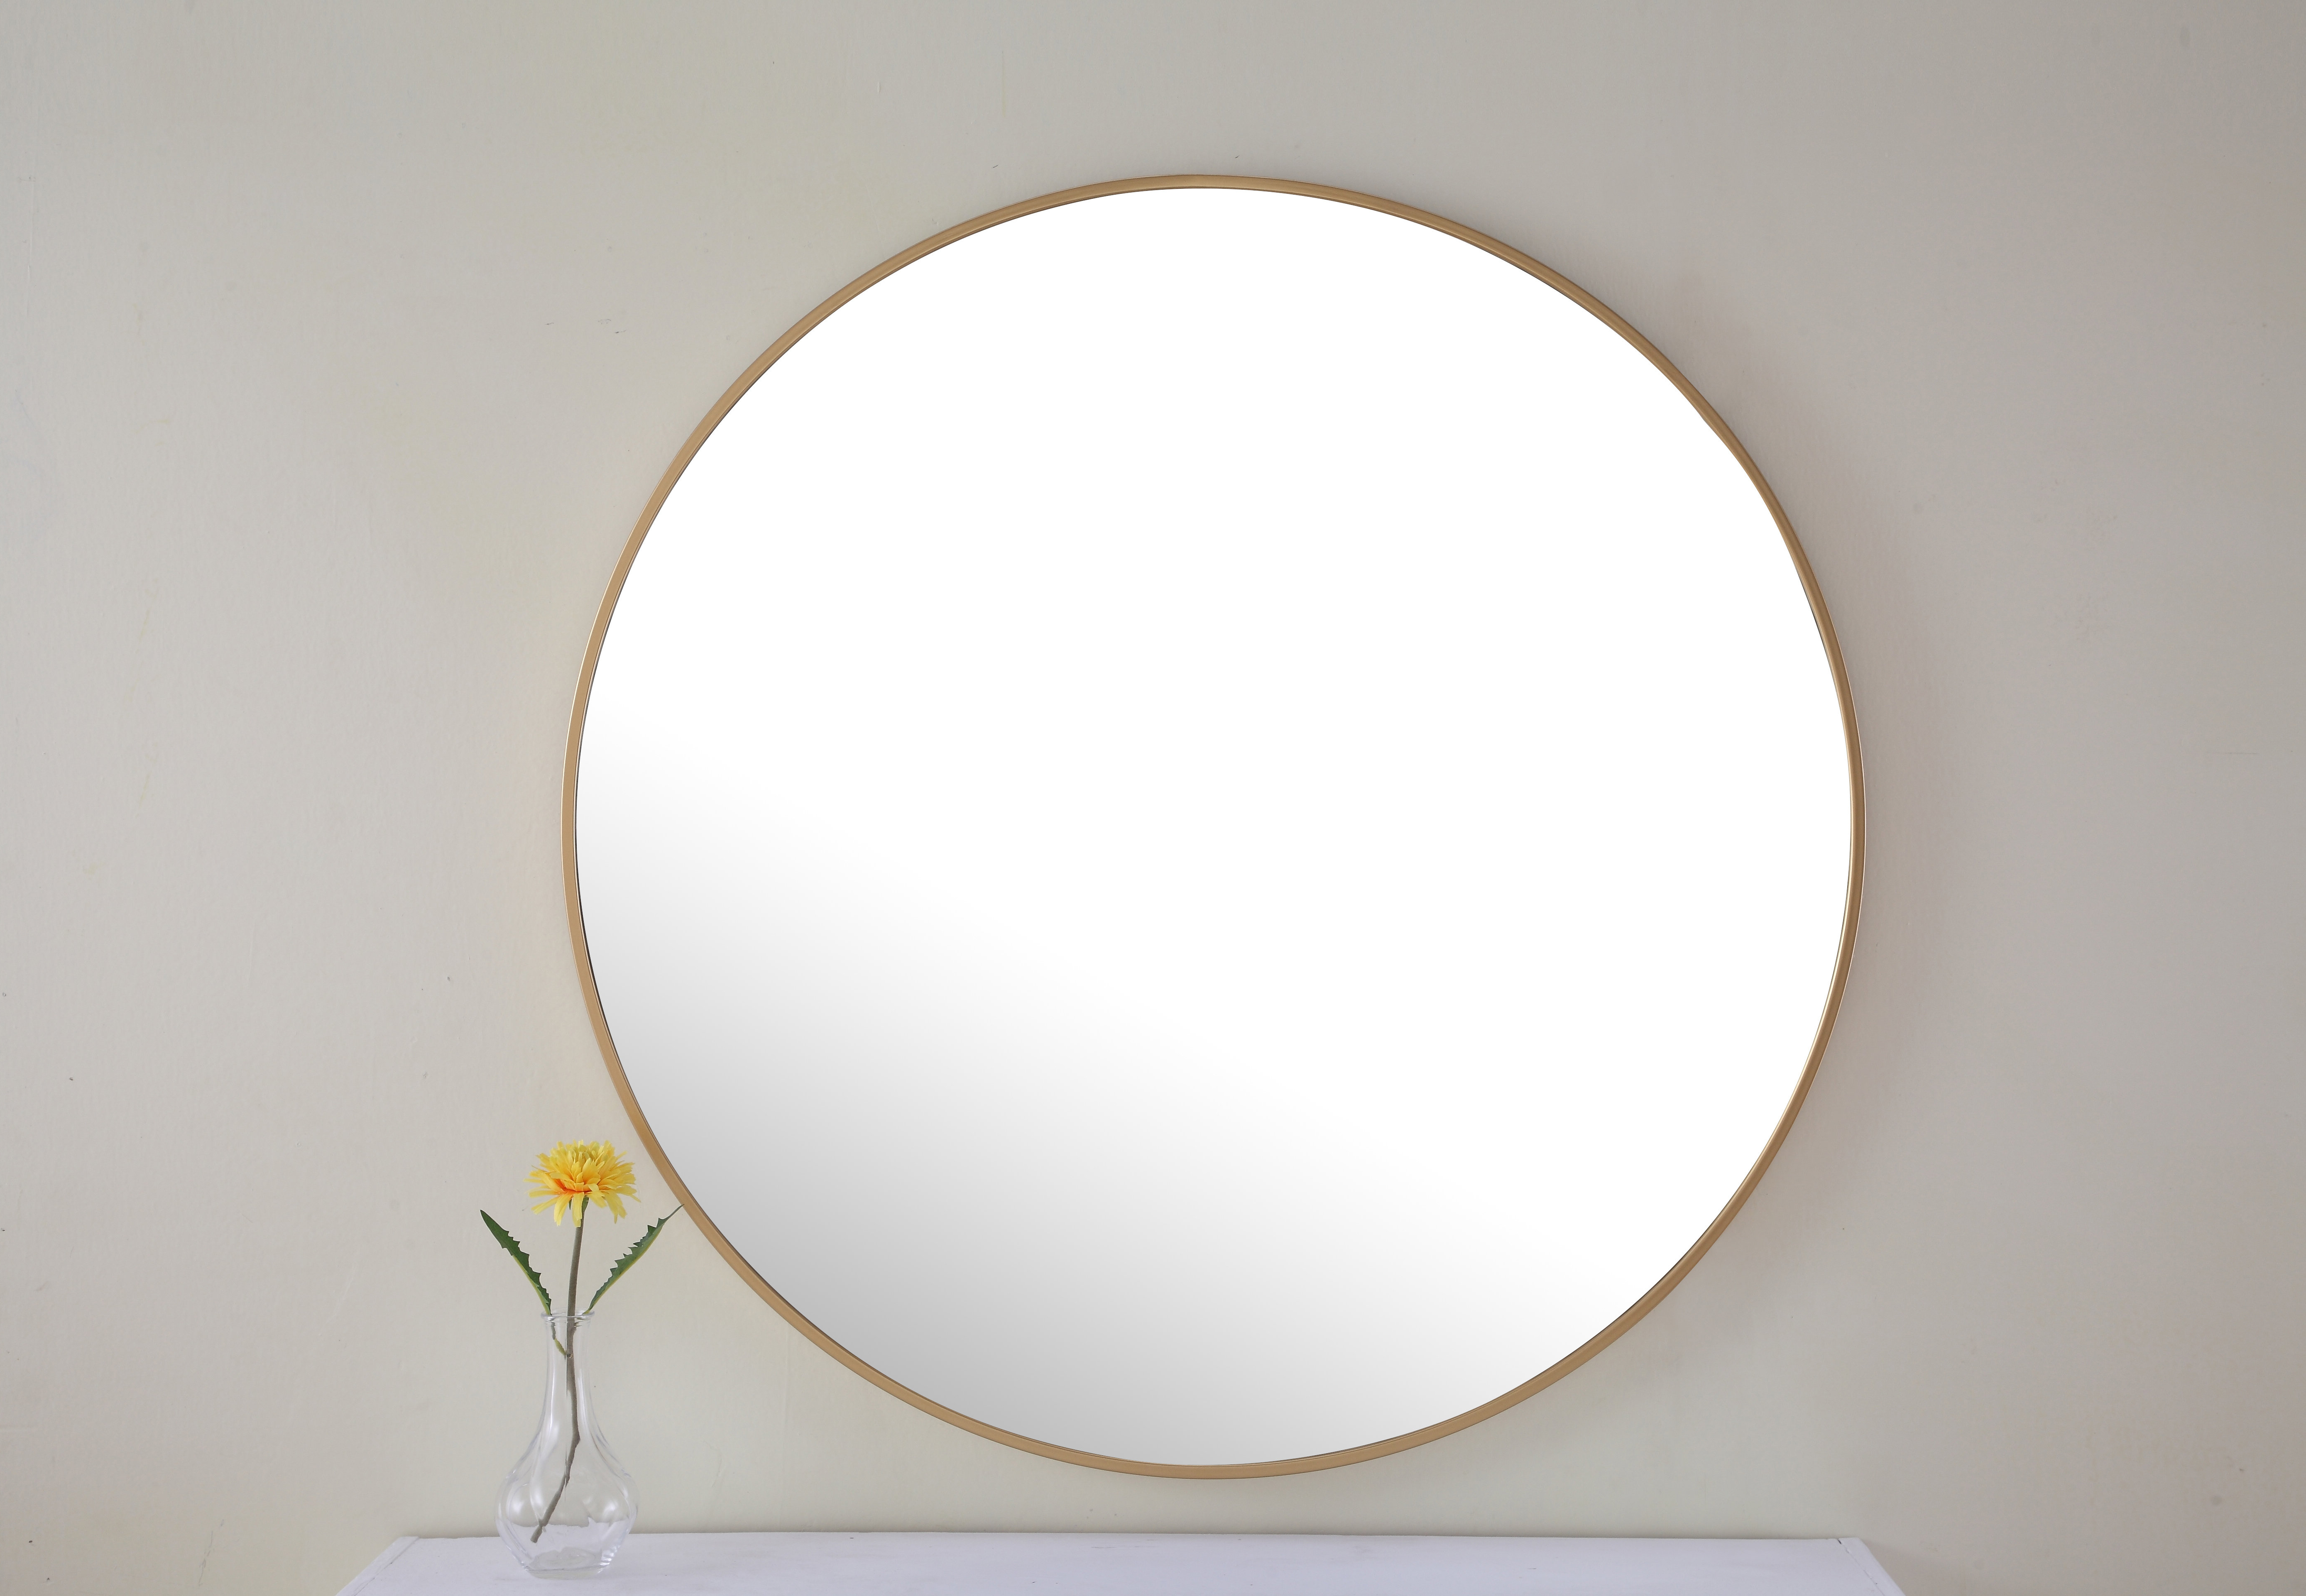 Greyleigh Needville Modern & Contemporary Beveled Accent Mirror Intended For Best And Newest Needville Modern & Contemporary Accent Mirrors (View 8 of 20)